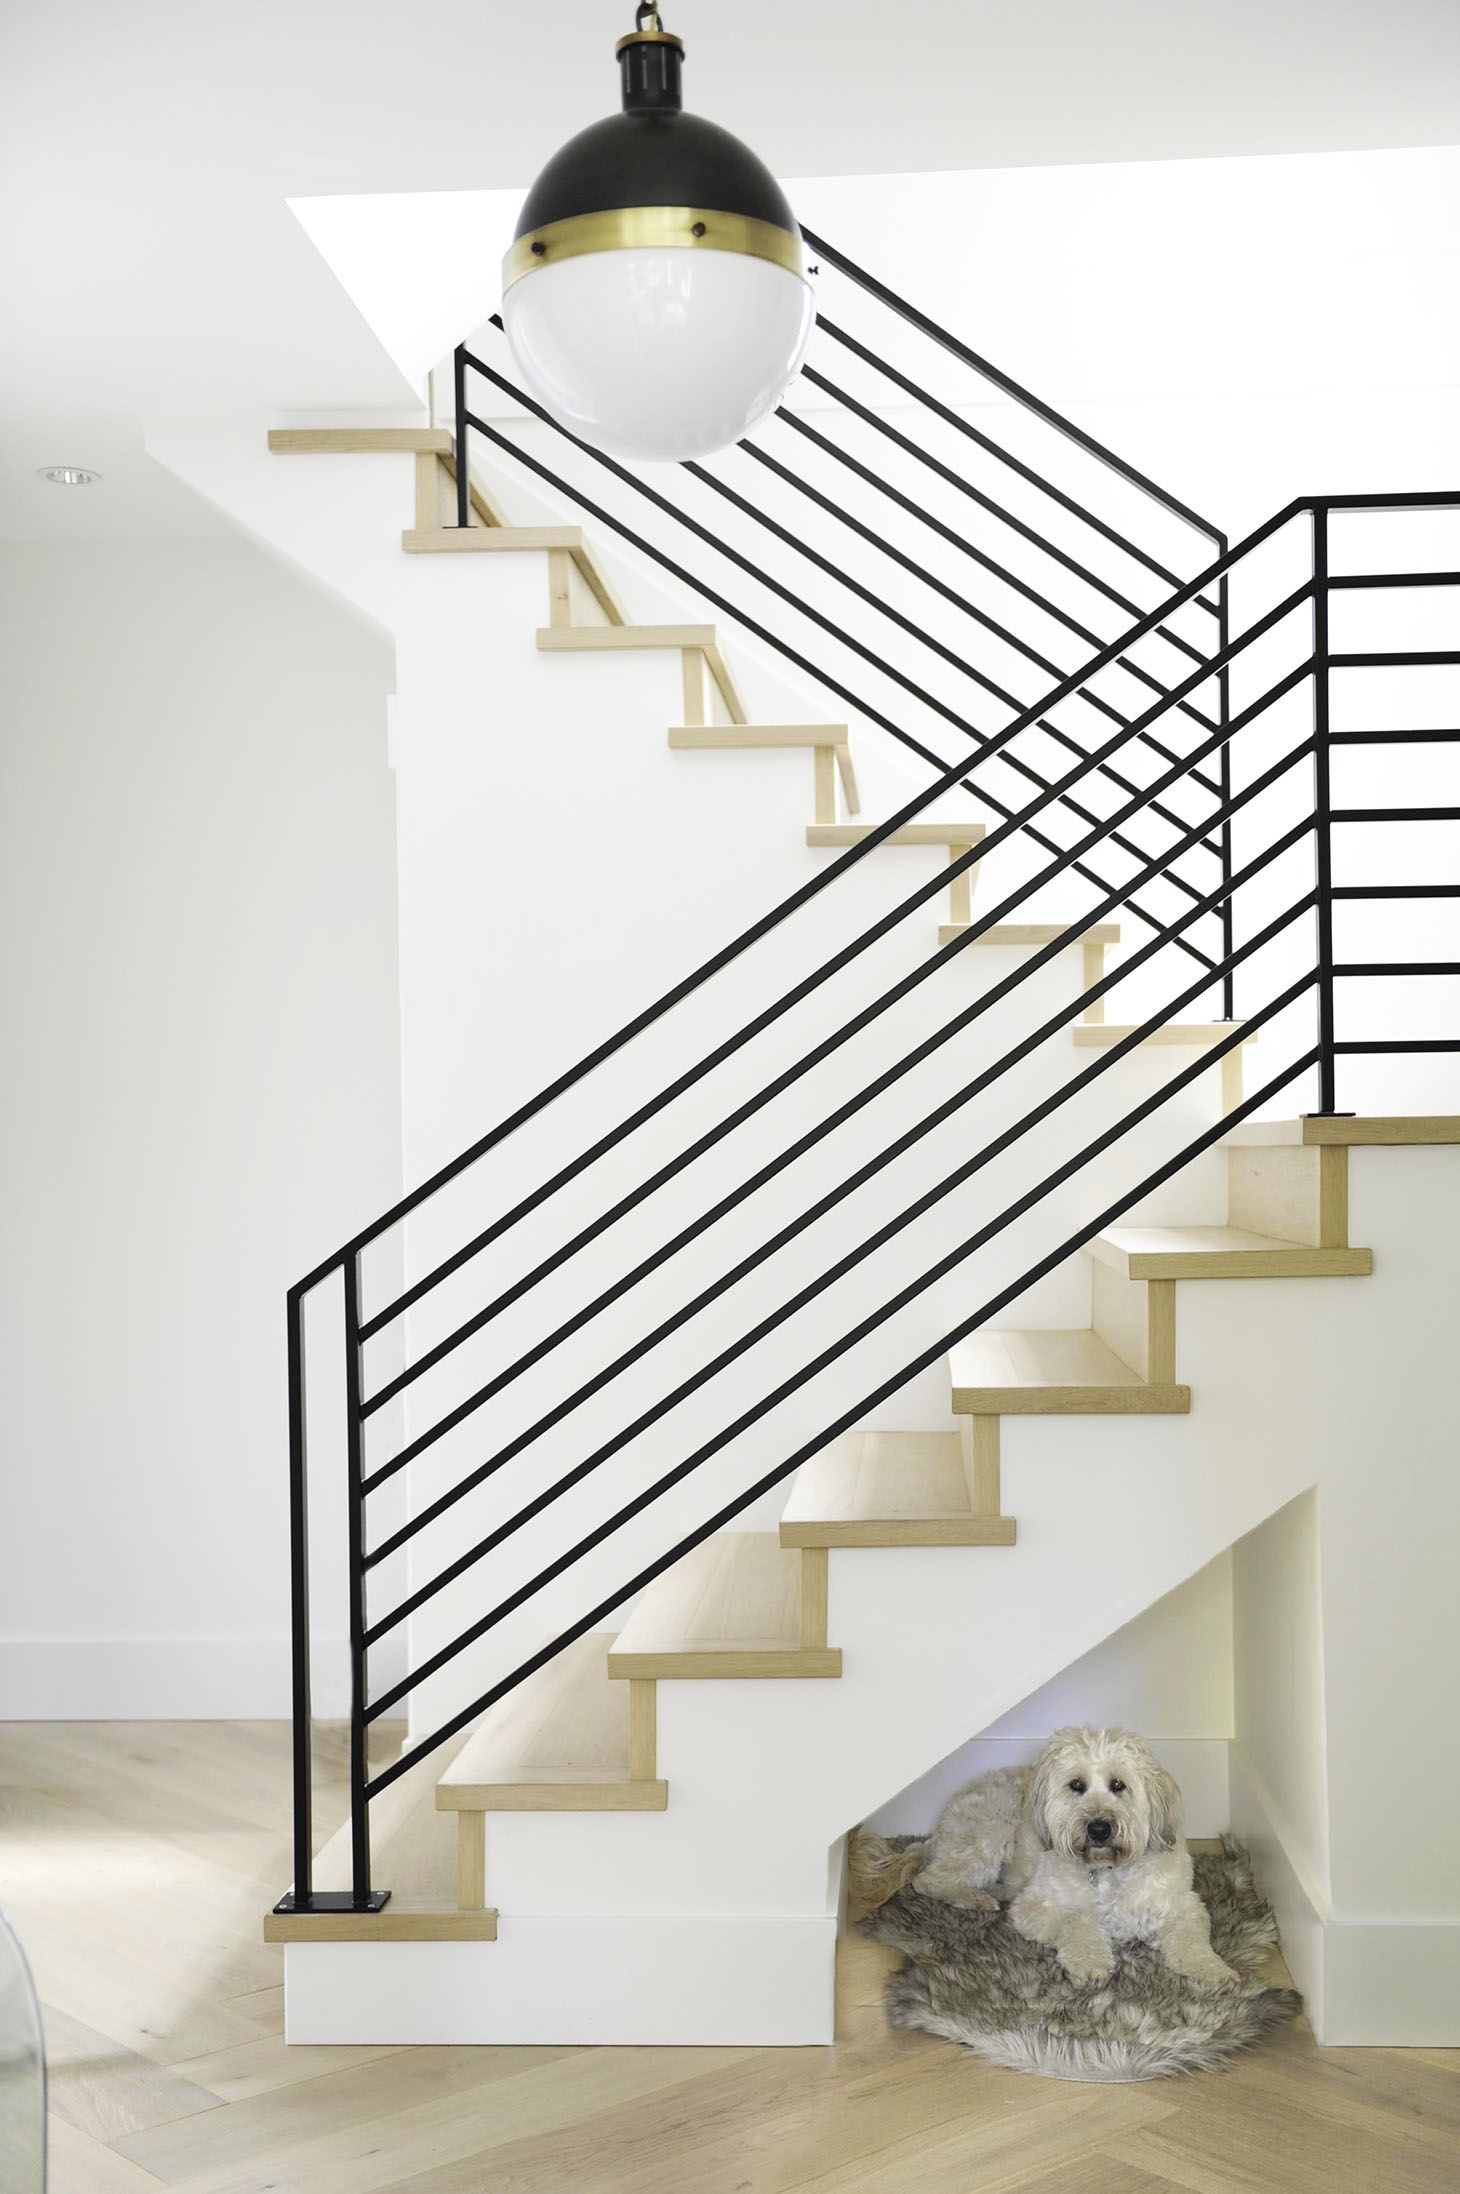 The Most Pinteresting Things This Month June — Farmhouse Living | Railing Of Stairs Design | Stainless | Wrought Iron | Ultra Modern Stair Grill | Stylish | Creative